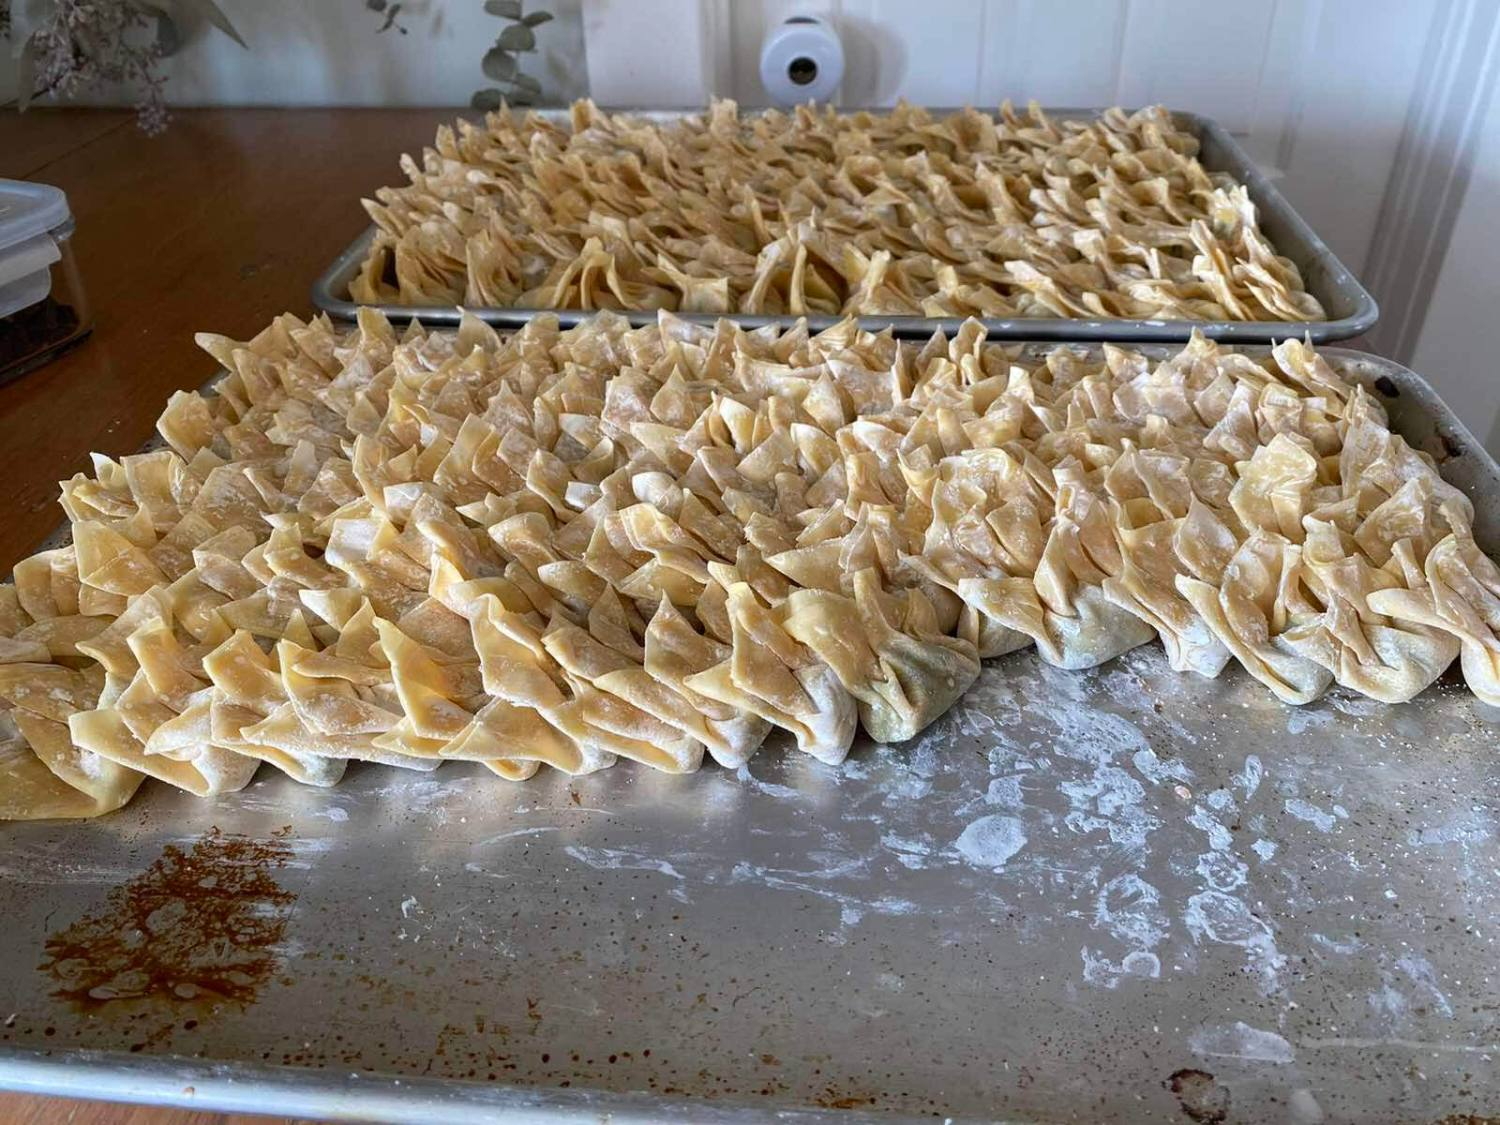 Two baking trays of wontons